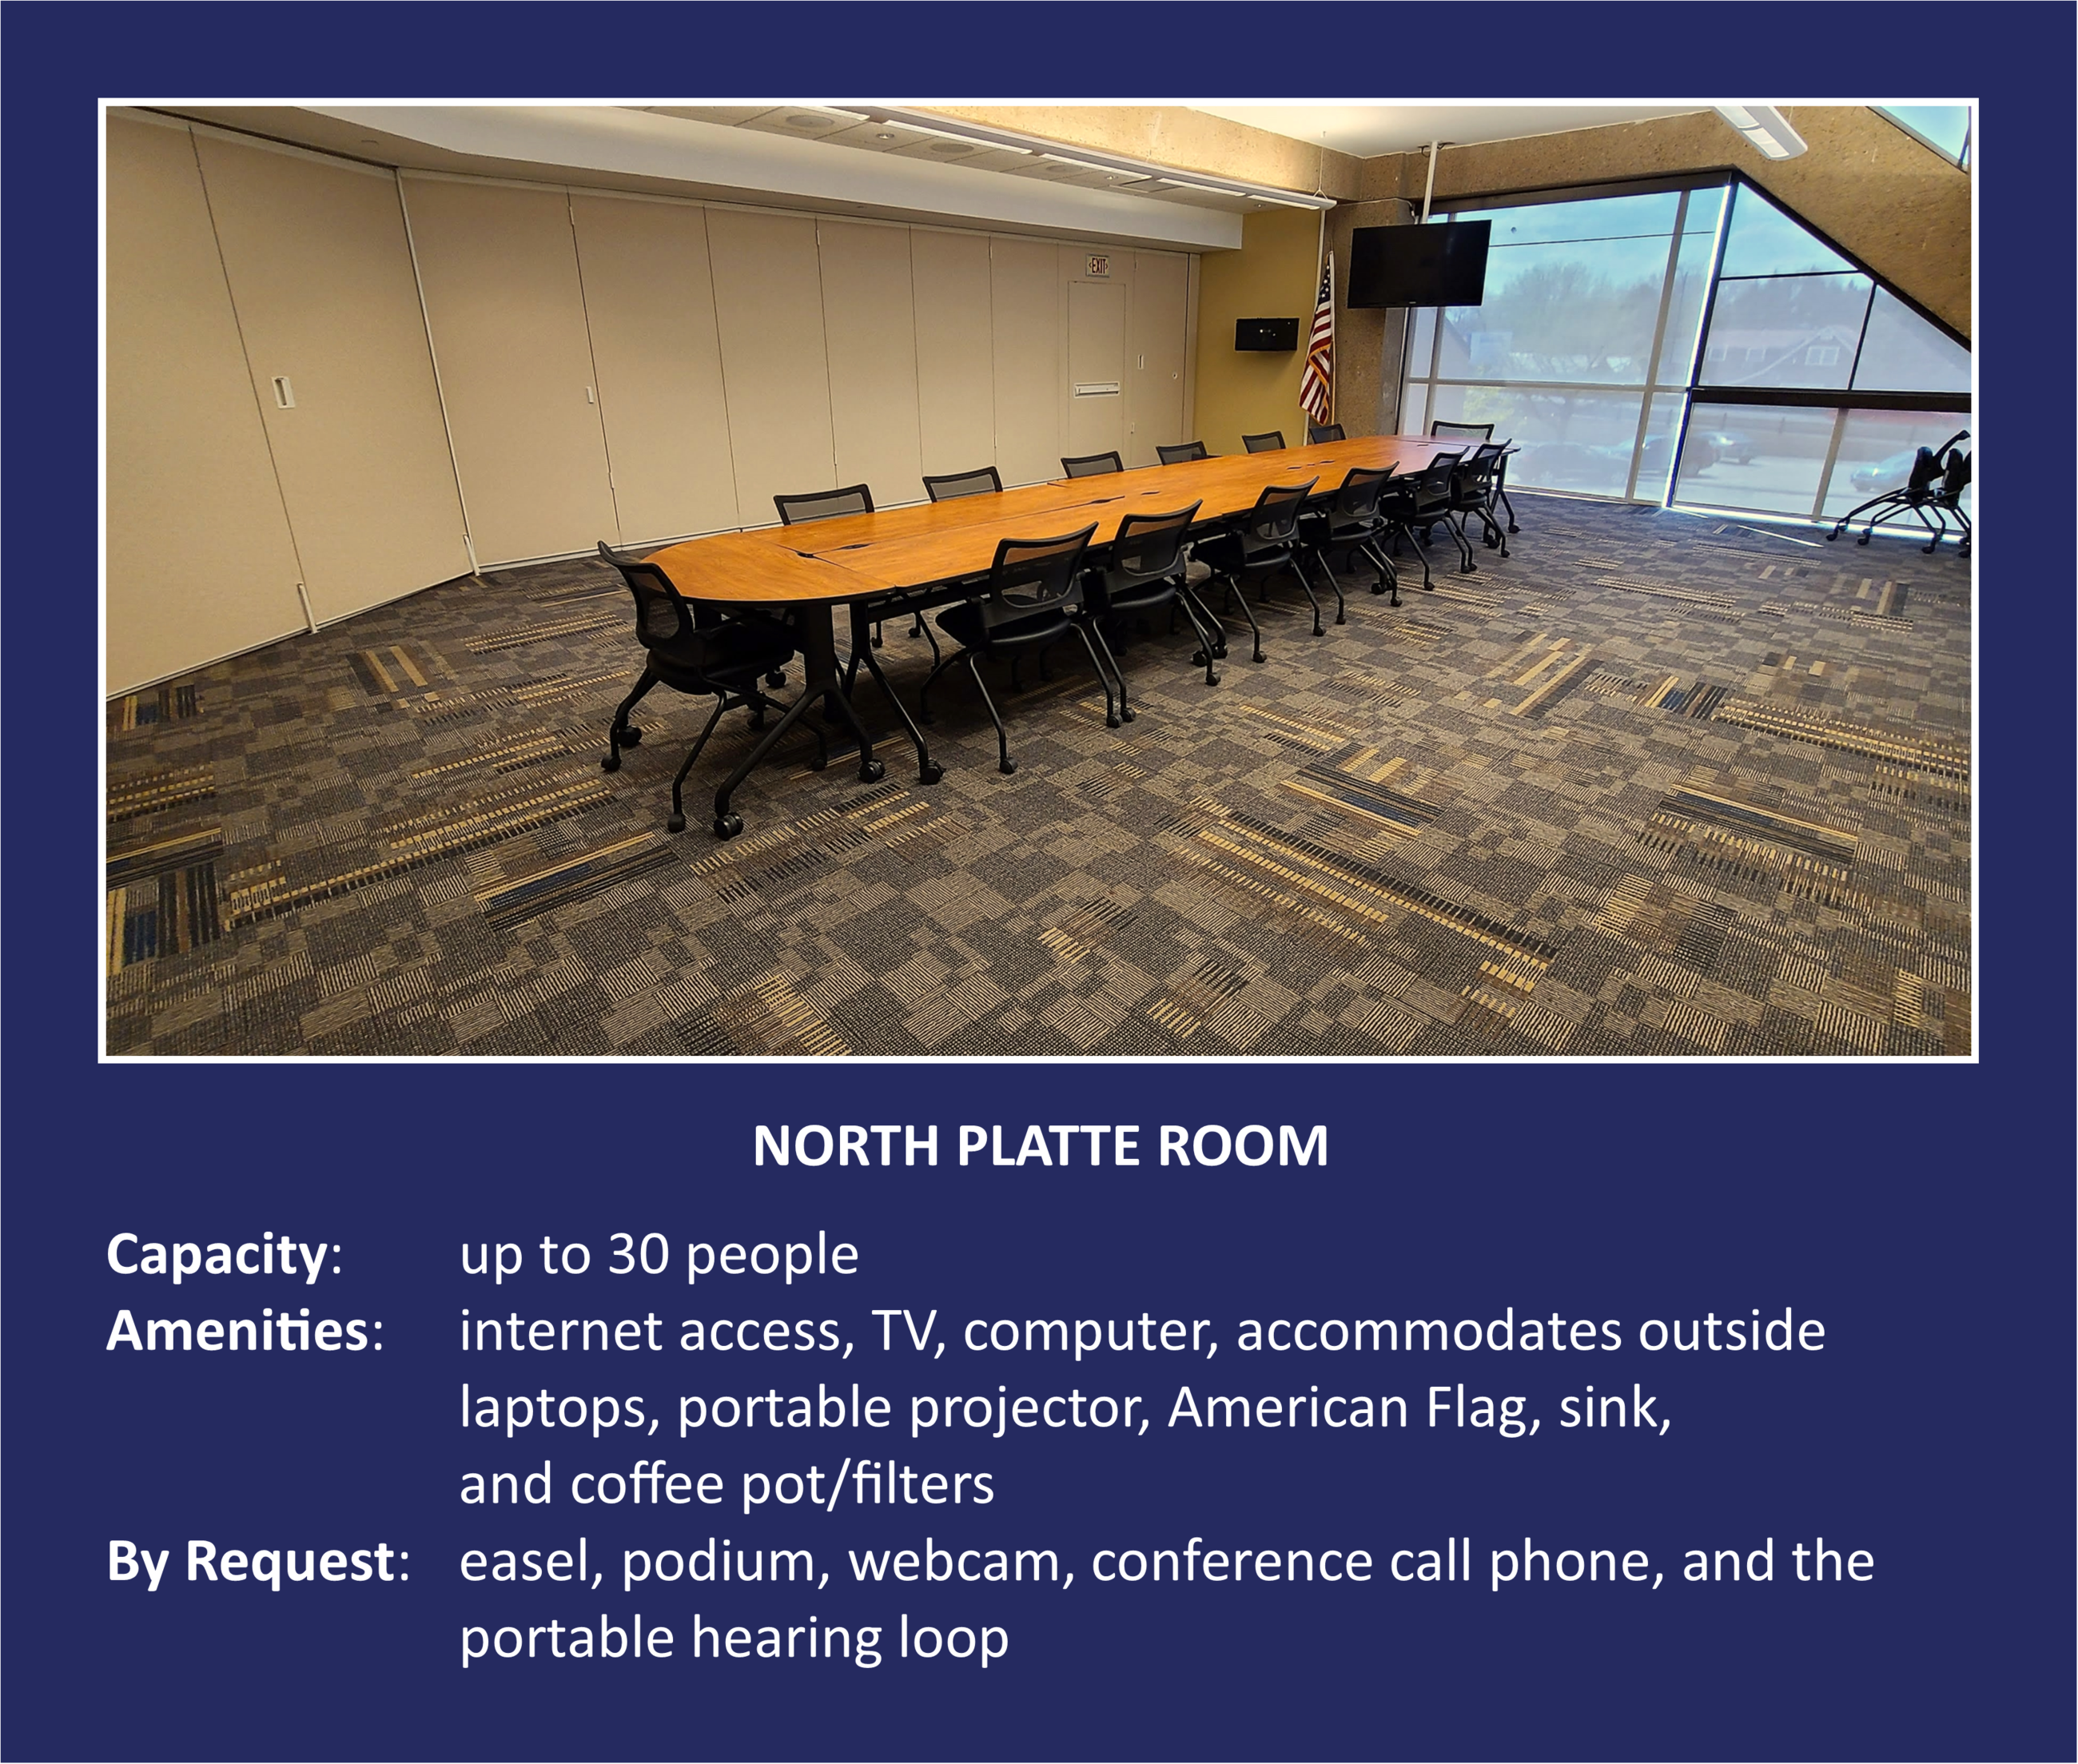 North Platte Room